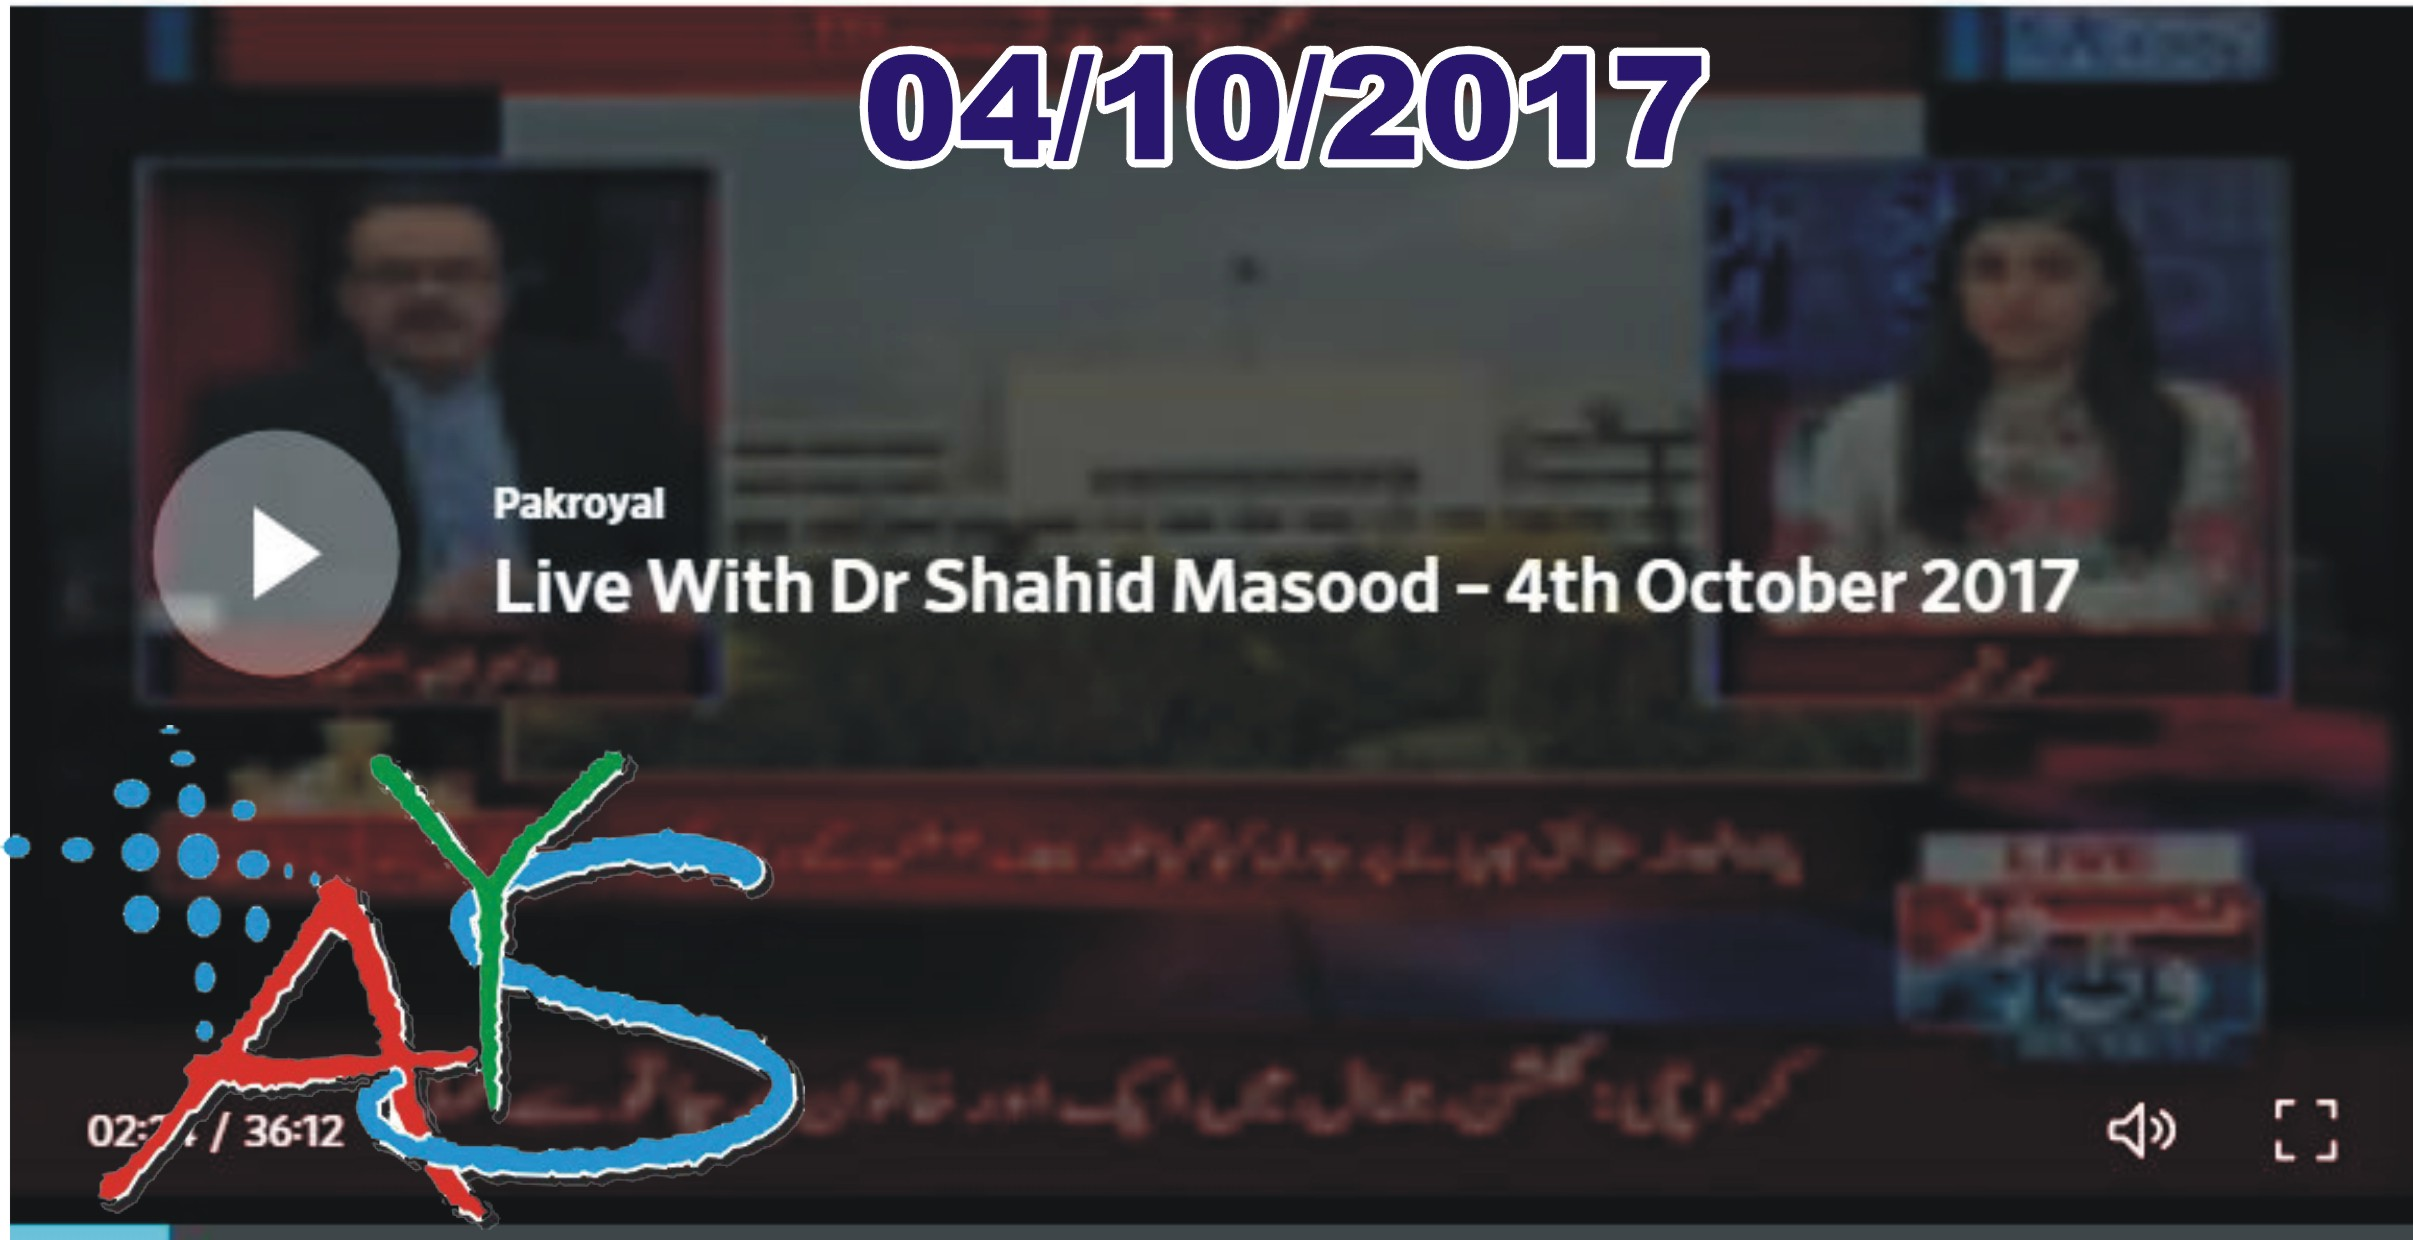 04 Oct 2017 - Khatam E Nabuwat Bill Changing